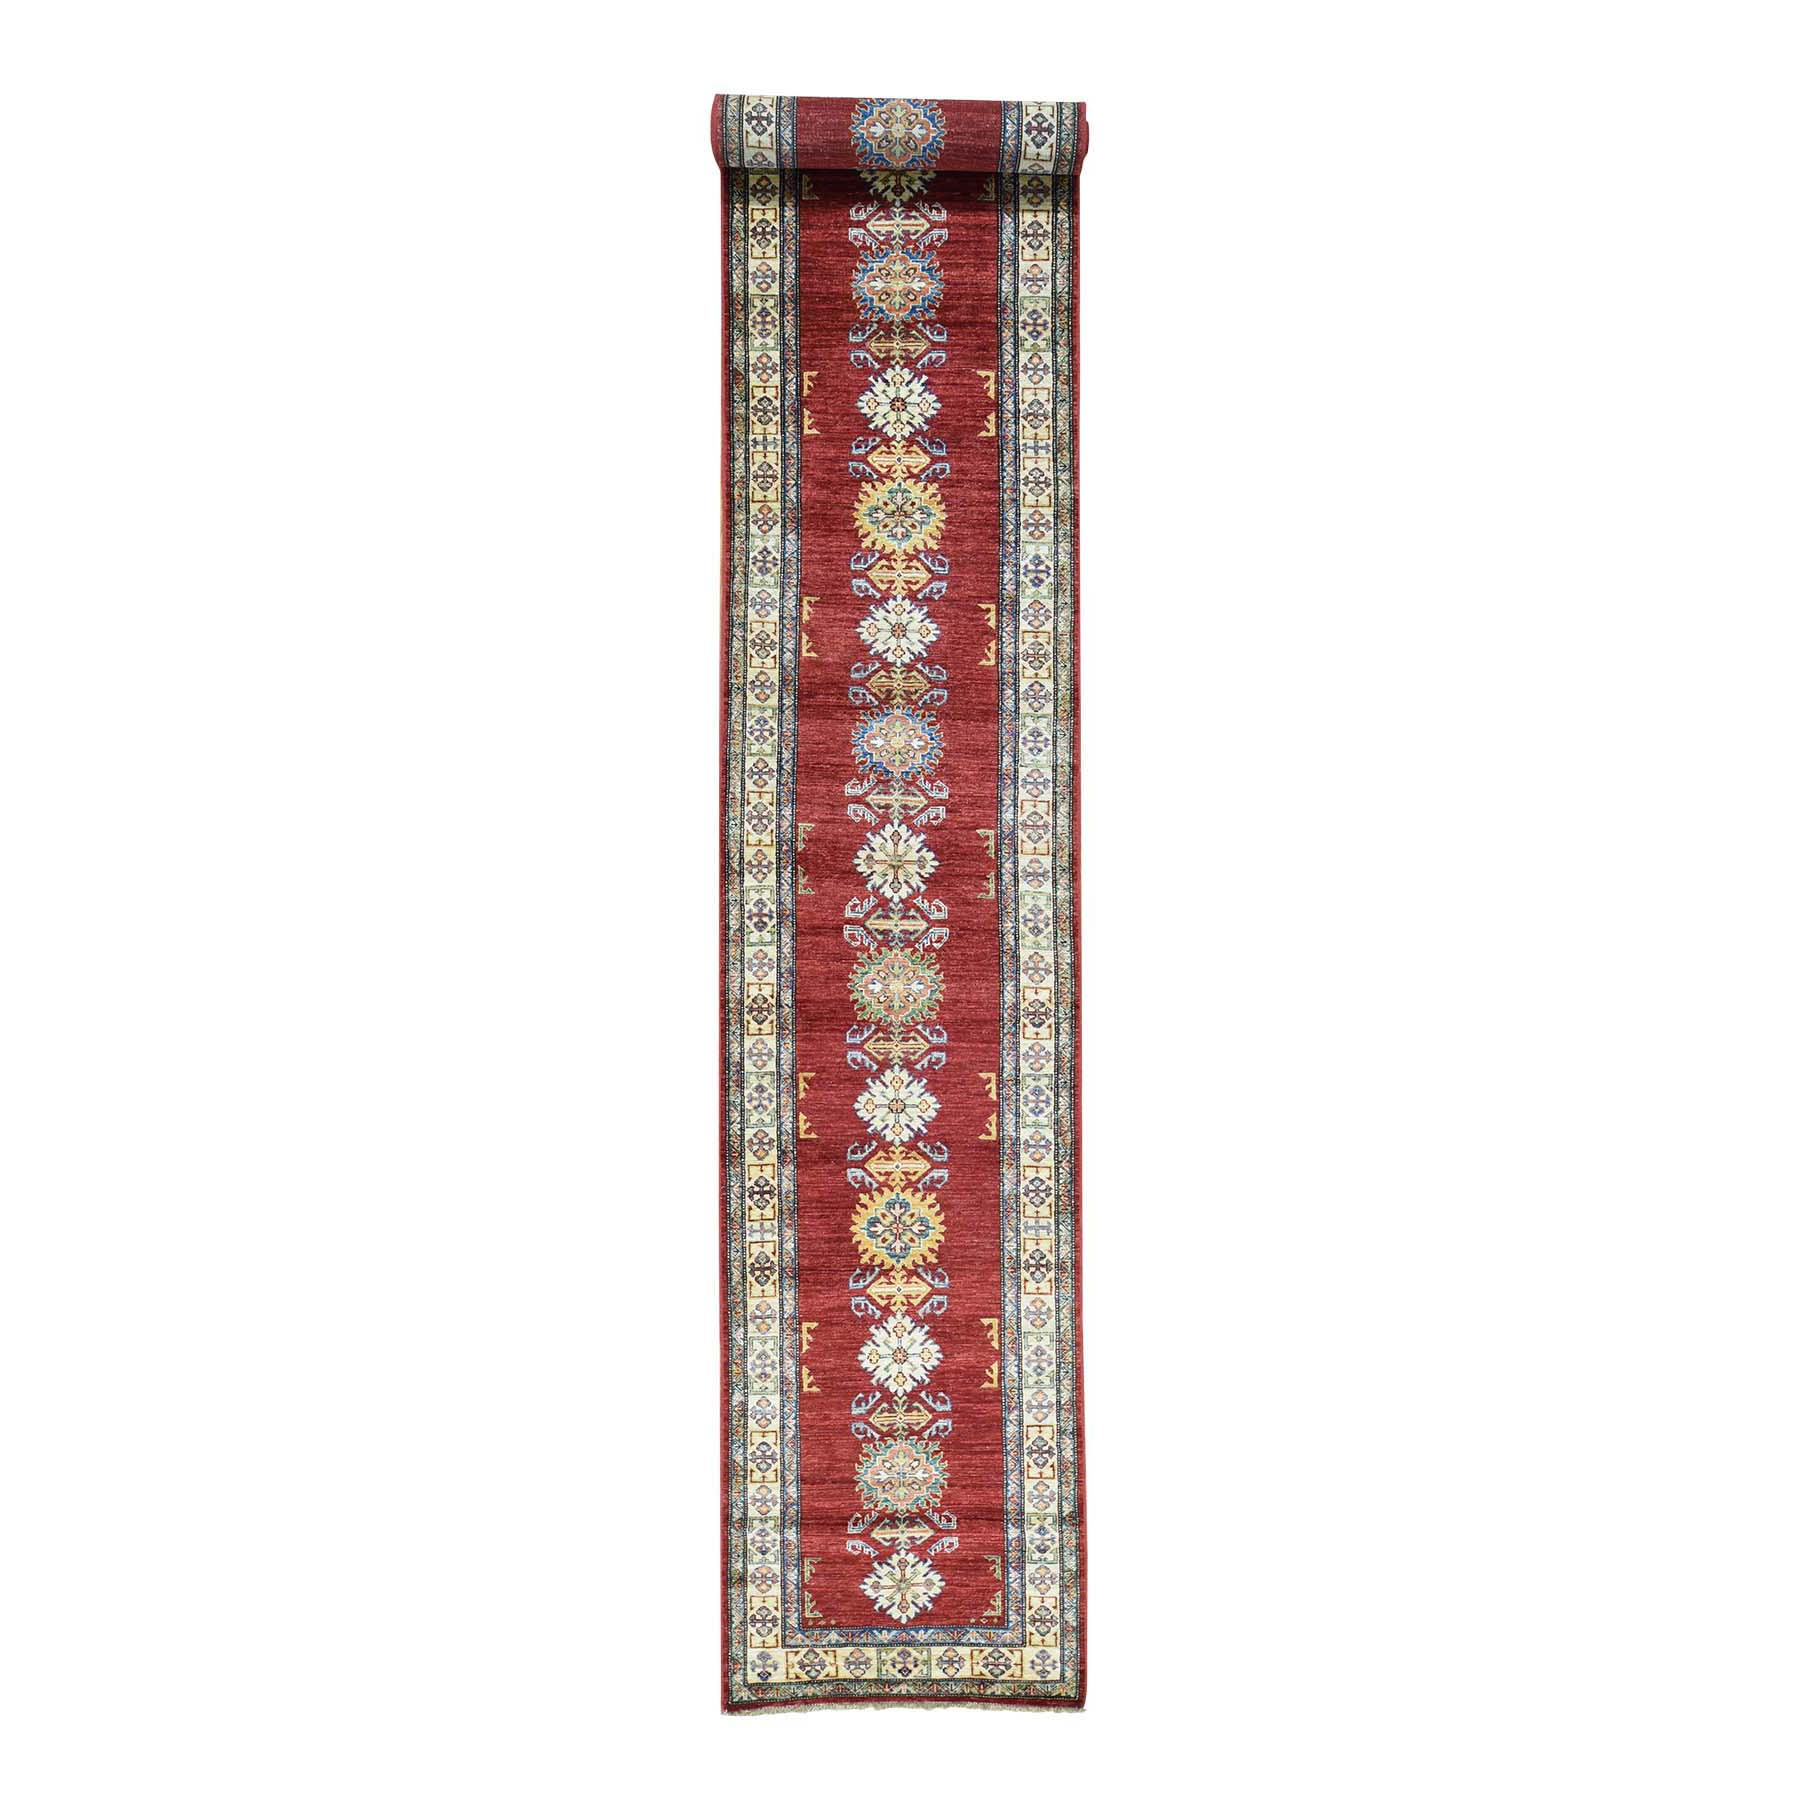 "2'8""X19'1"" Hand-Knotted Super Kazak Xl Runner Tribal Design Oriental Rug moac08bd"